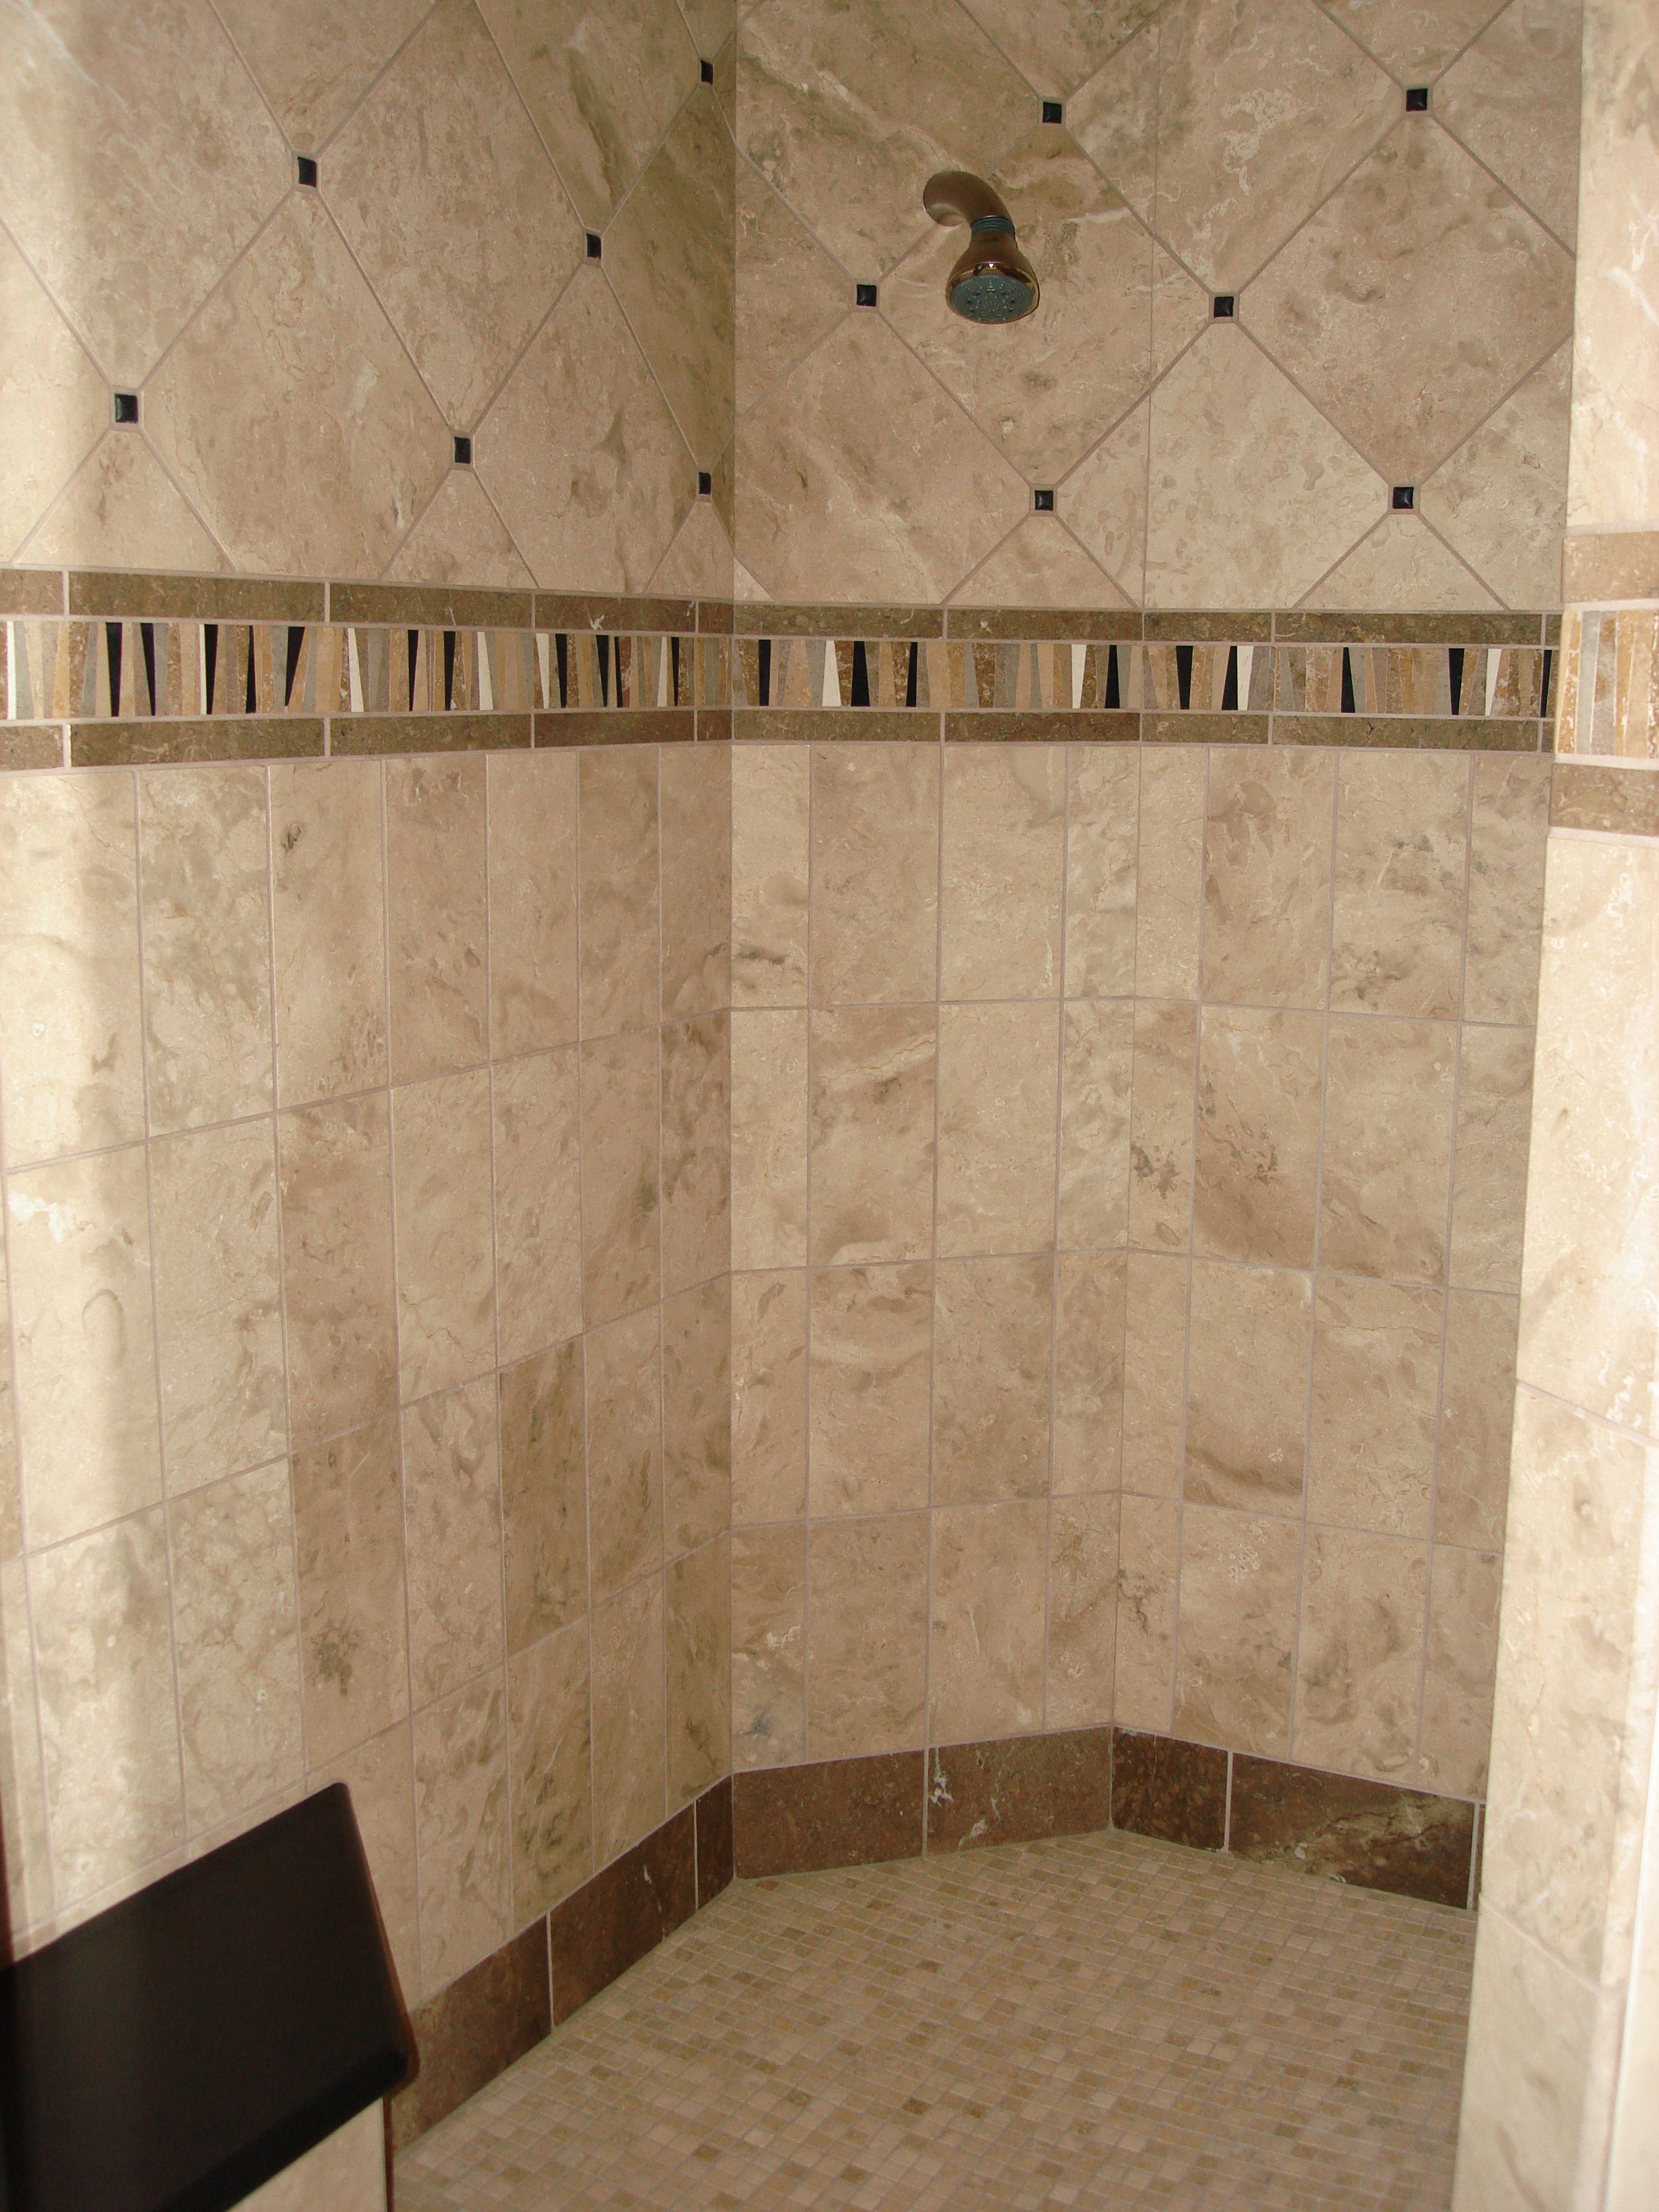 1000 images about shower tile ideas on pinterestshower tiles - Design Bathroom Tile